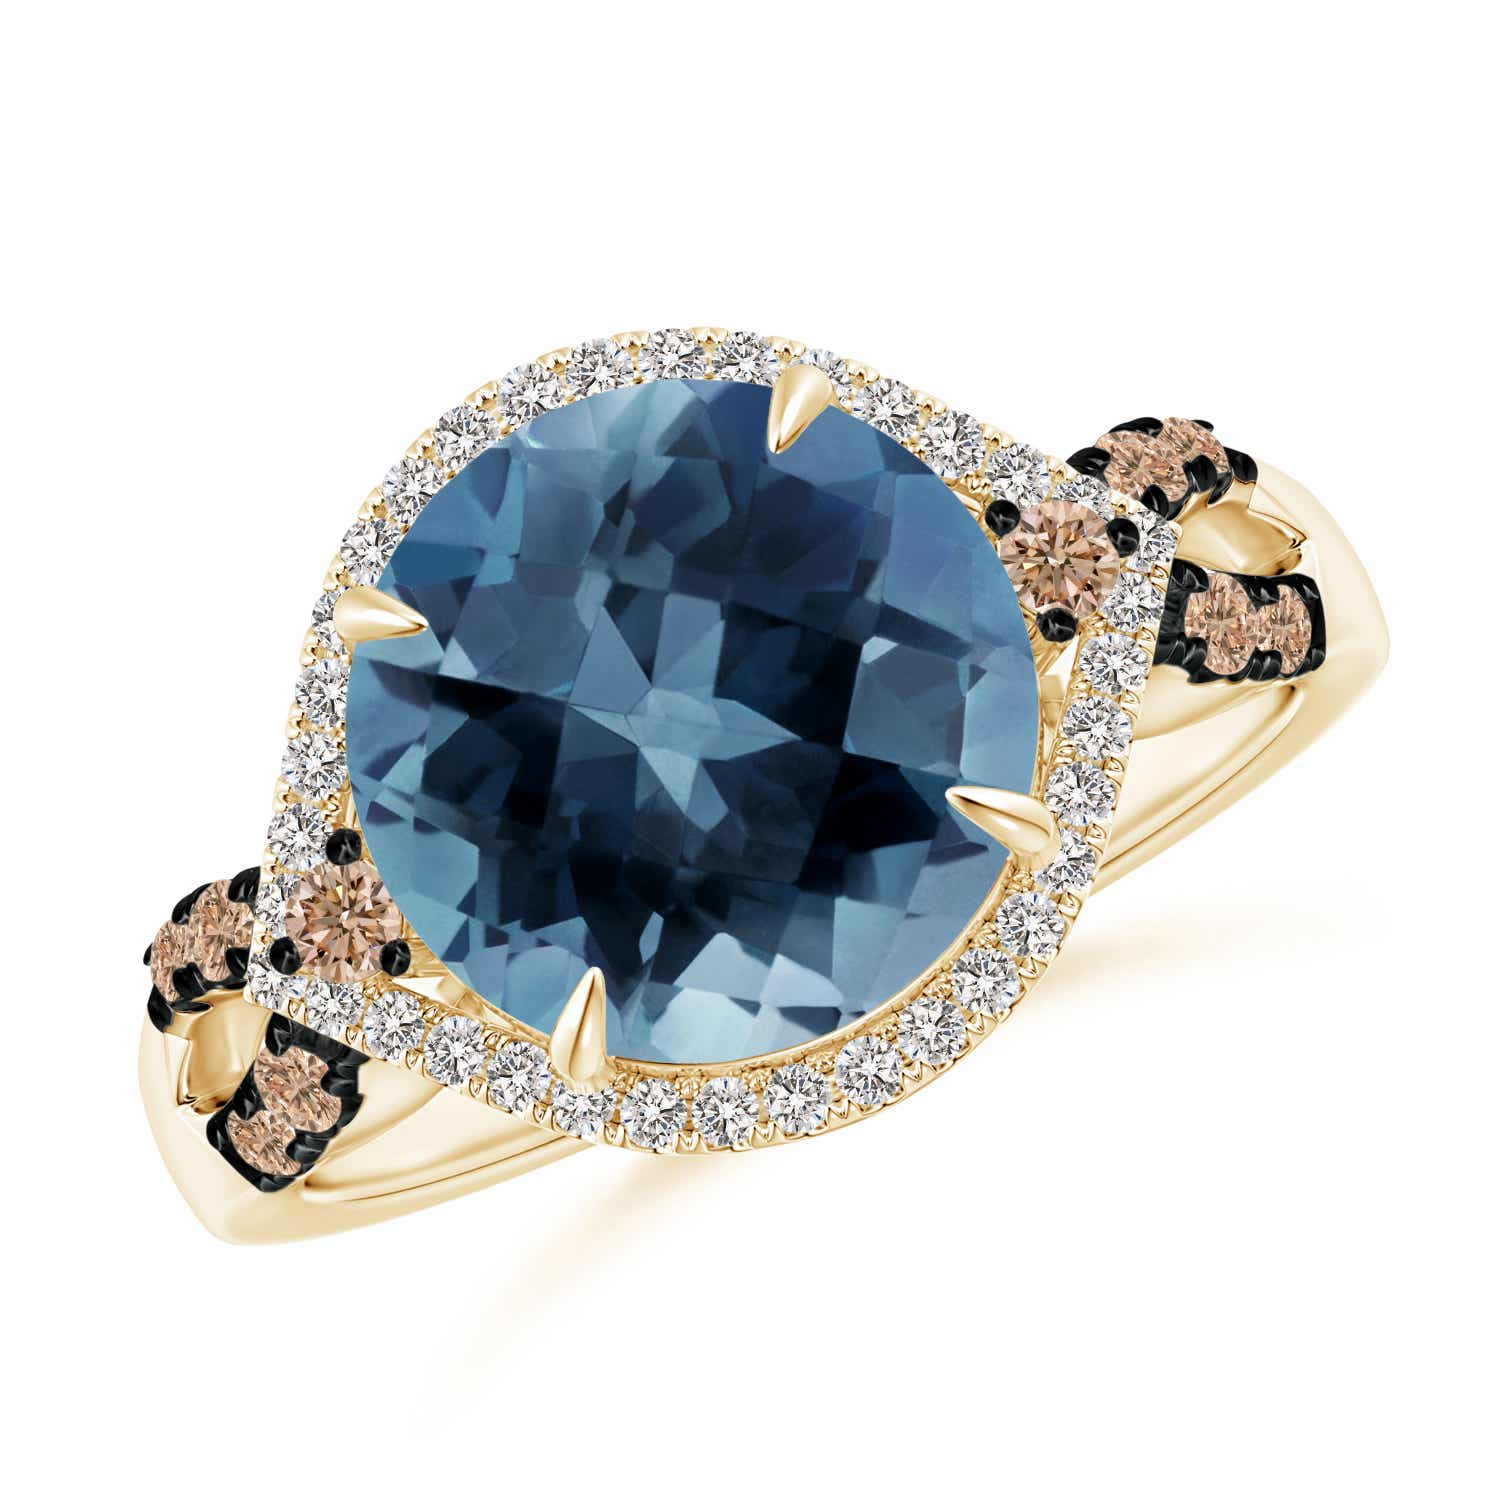 Angara London Blue Topaz Cocktail Ring with Coffee Diamond Accents 1eVKMDLn